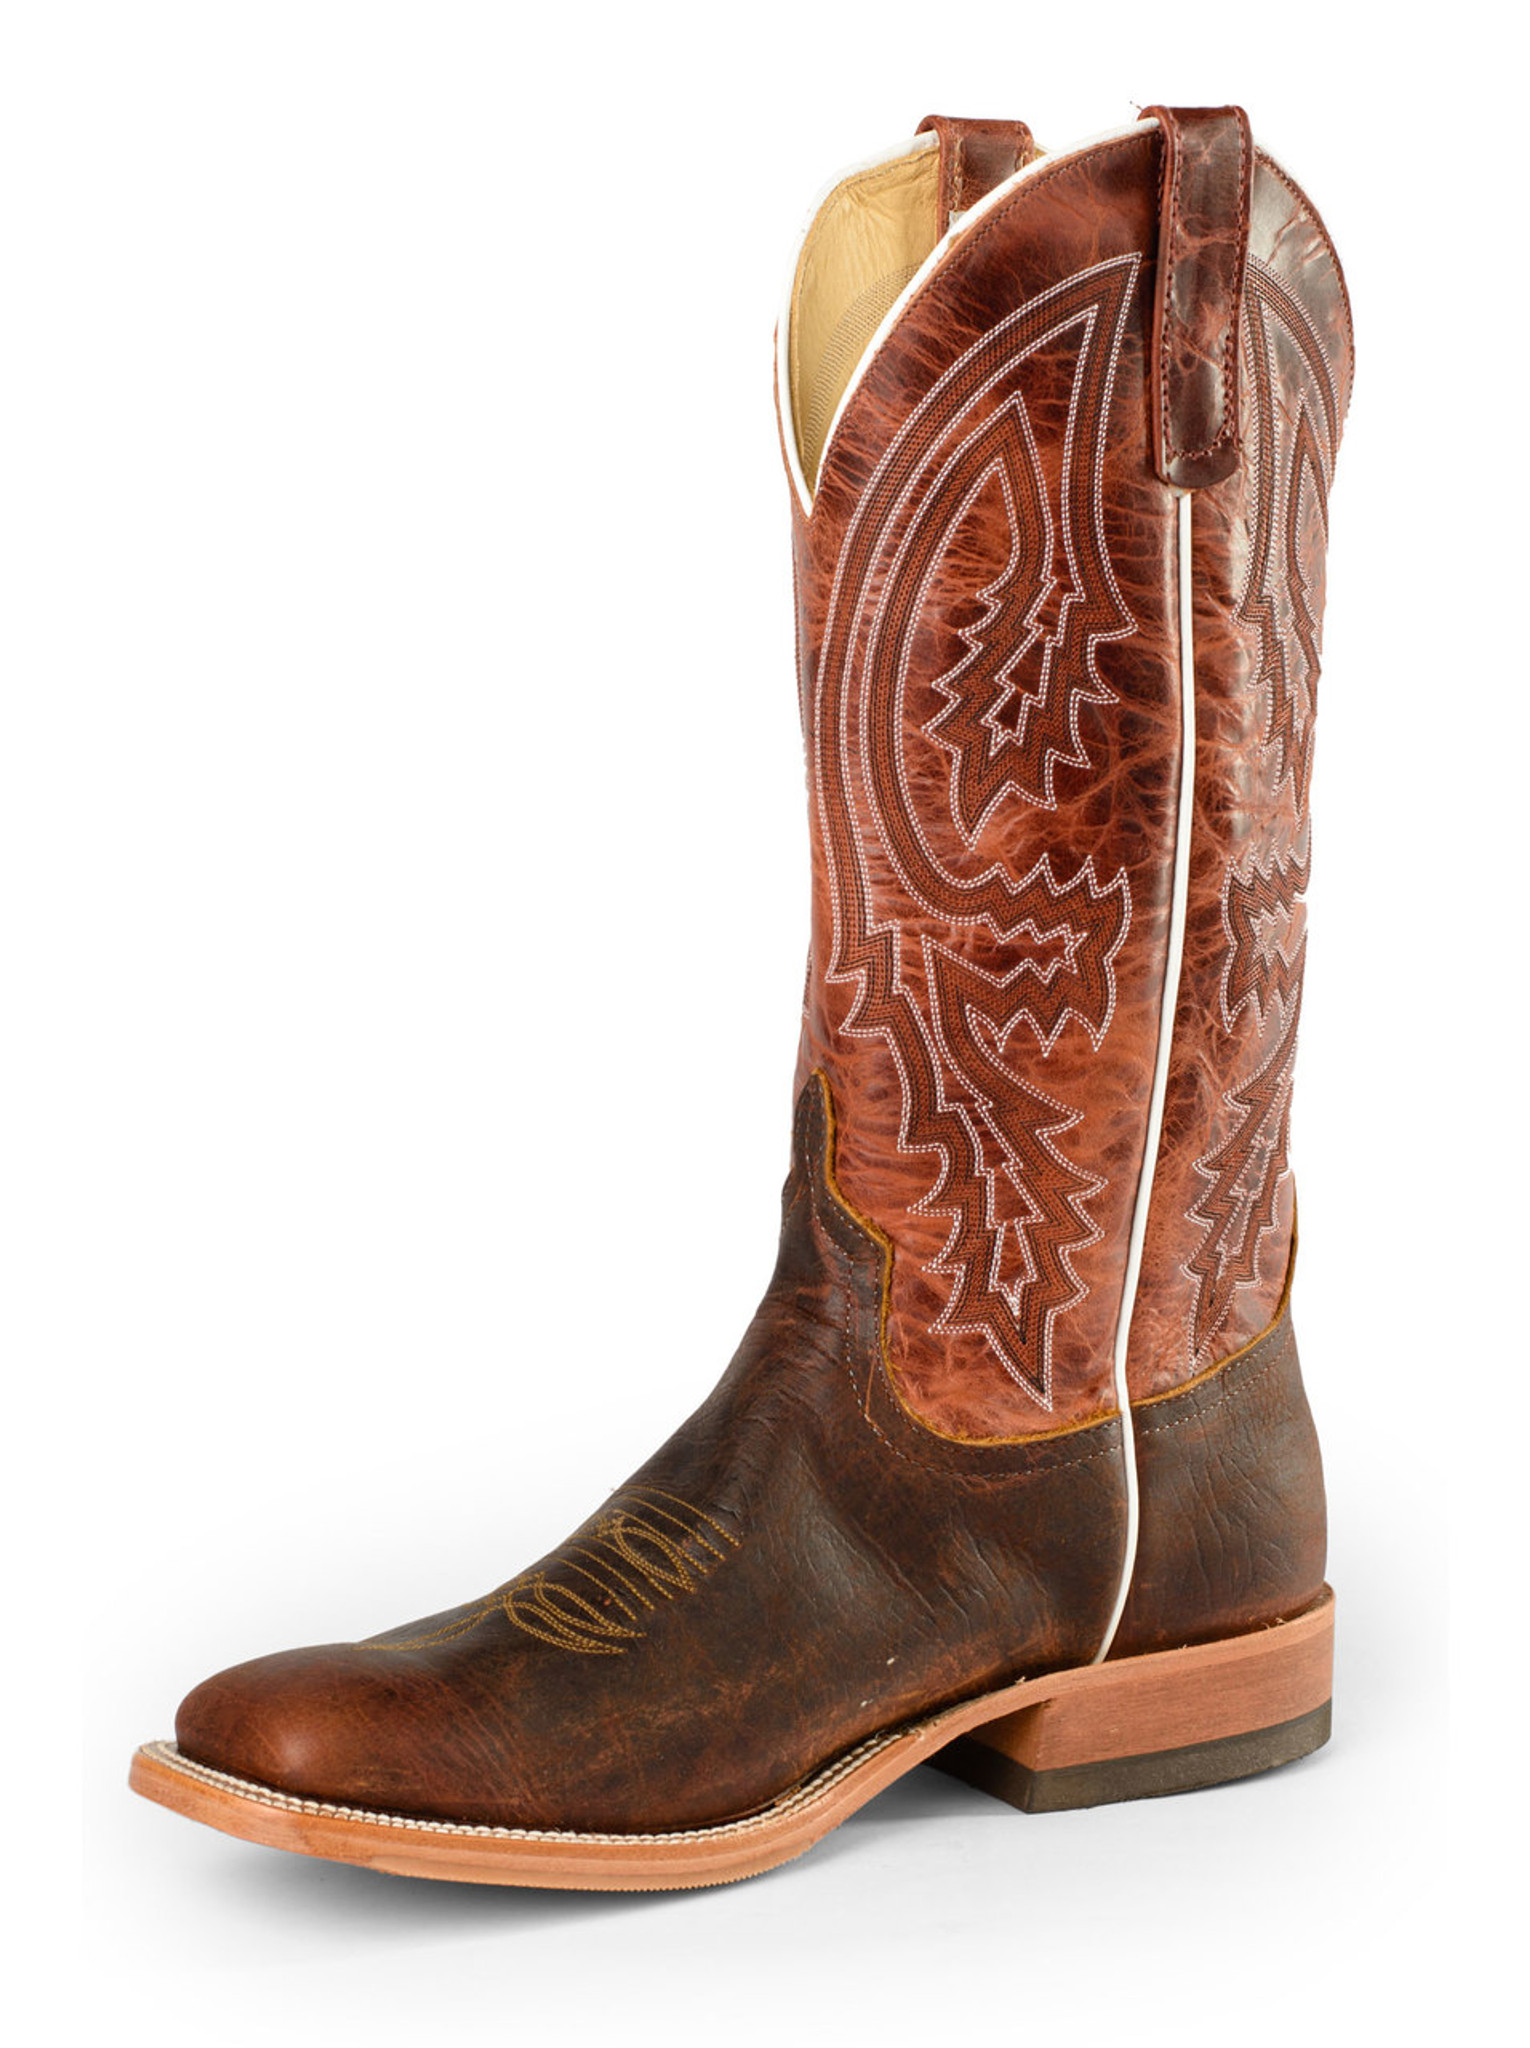 fe897840764 Men's Anderson Bean Boot, Rust with White Piping and Chocolate Brown